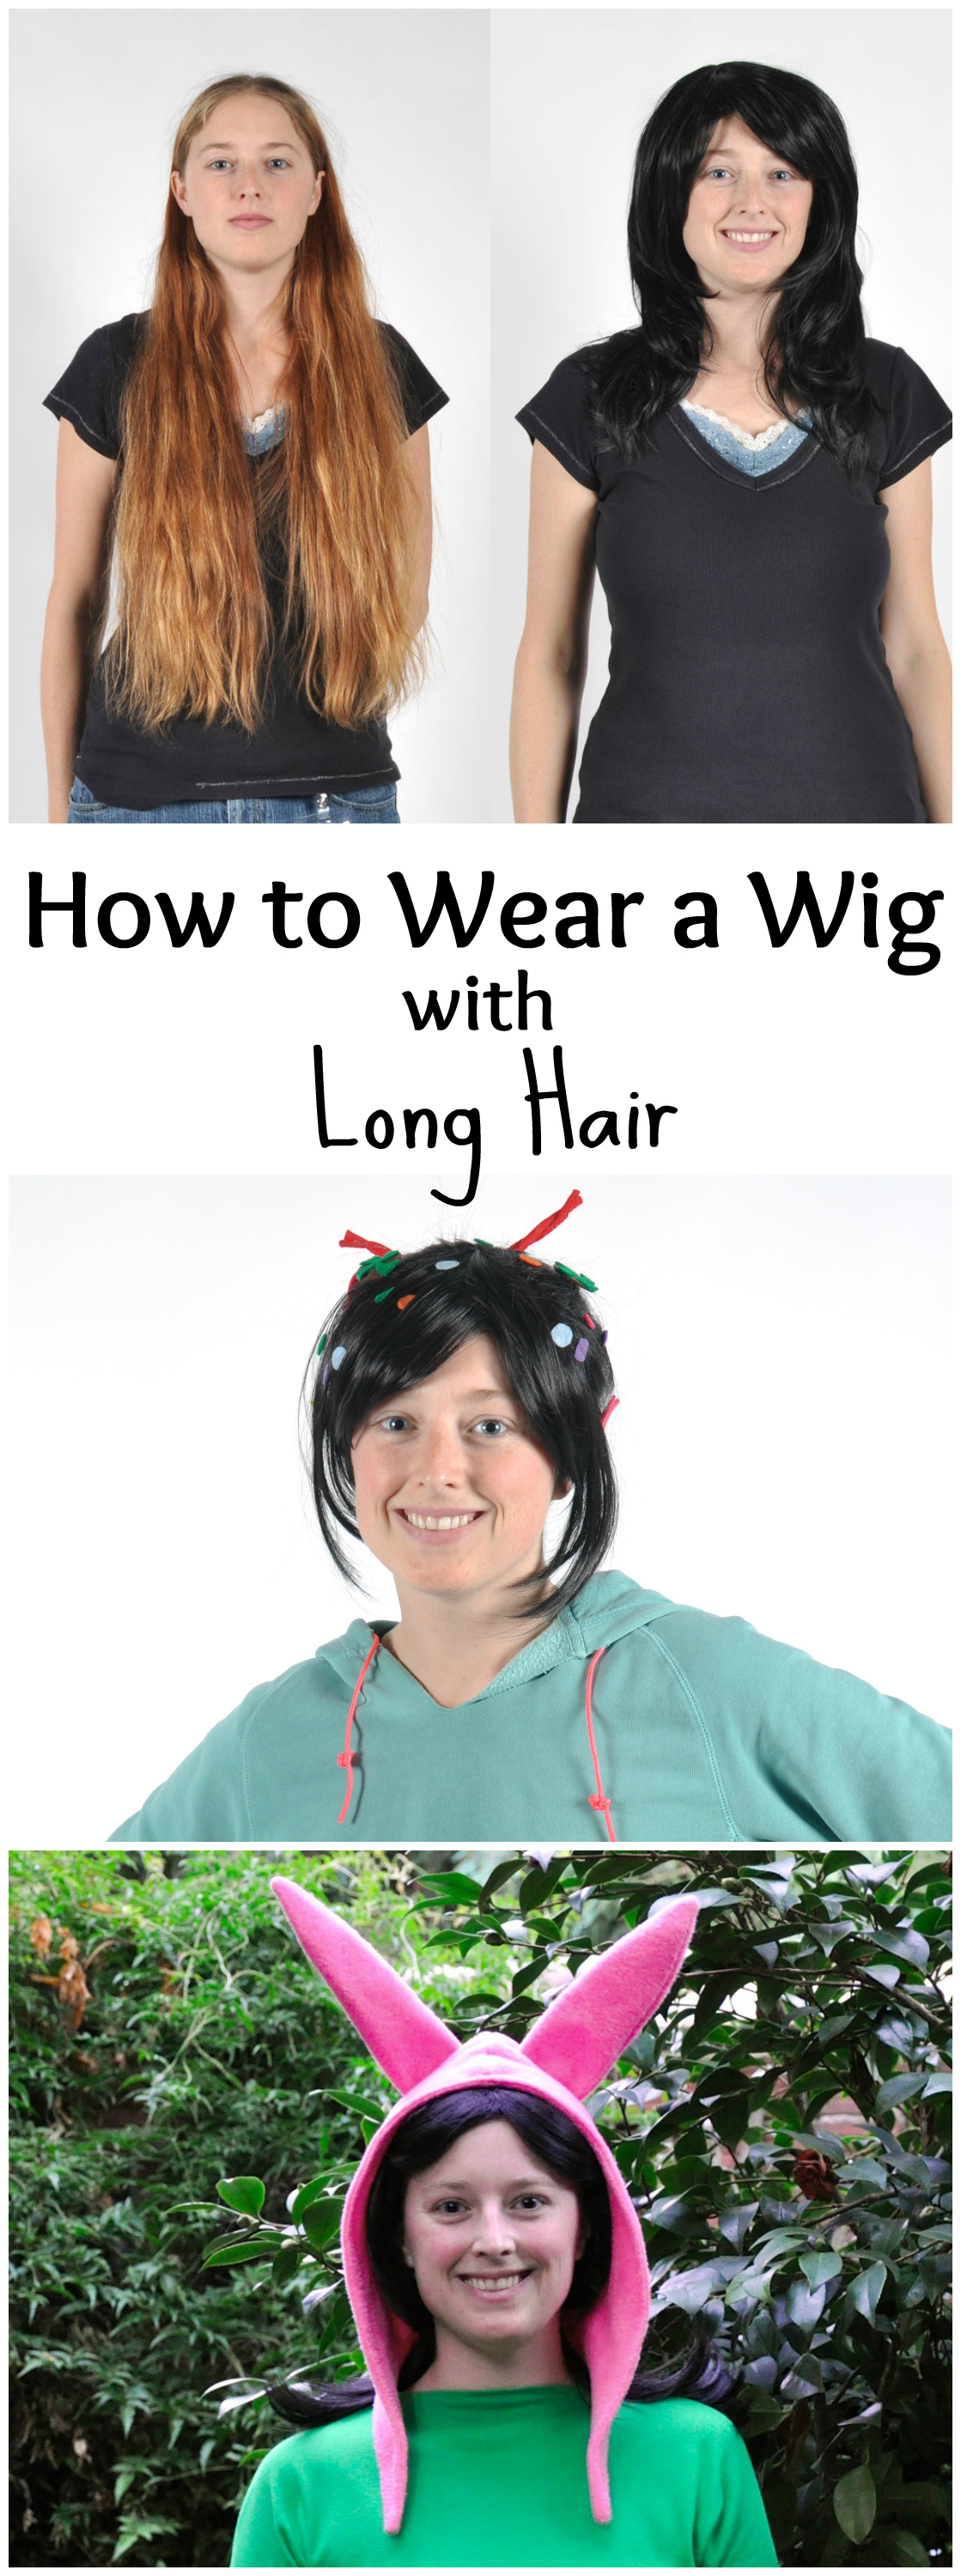 How To Wear A Wig With Long Hair 4 Steps With Pictures